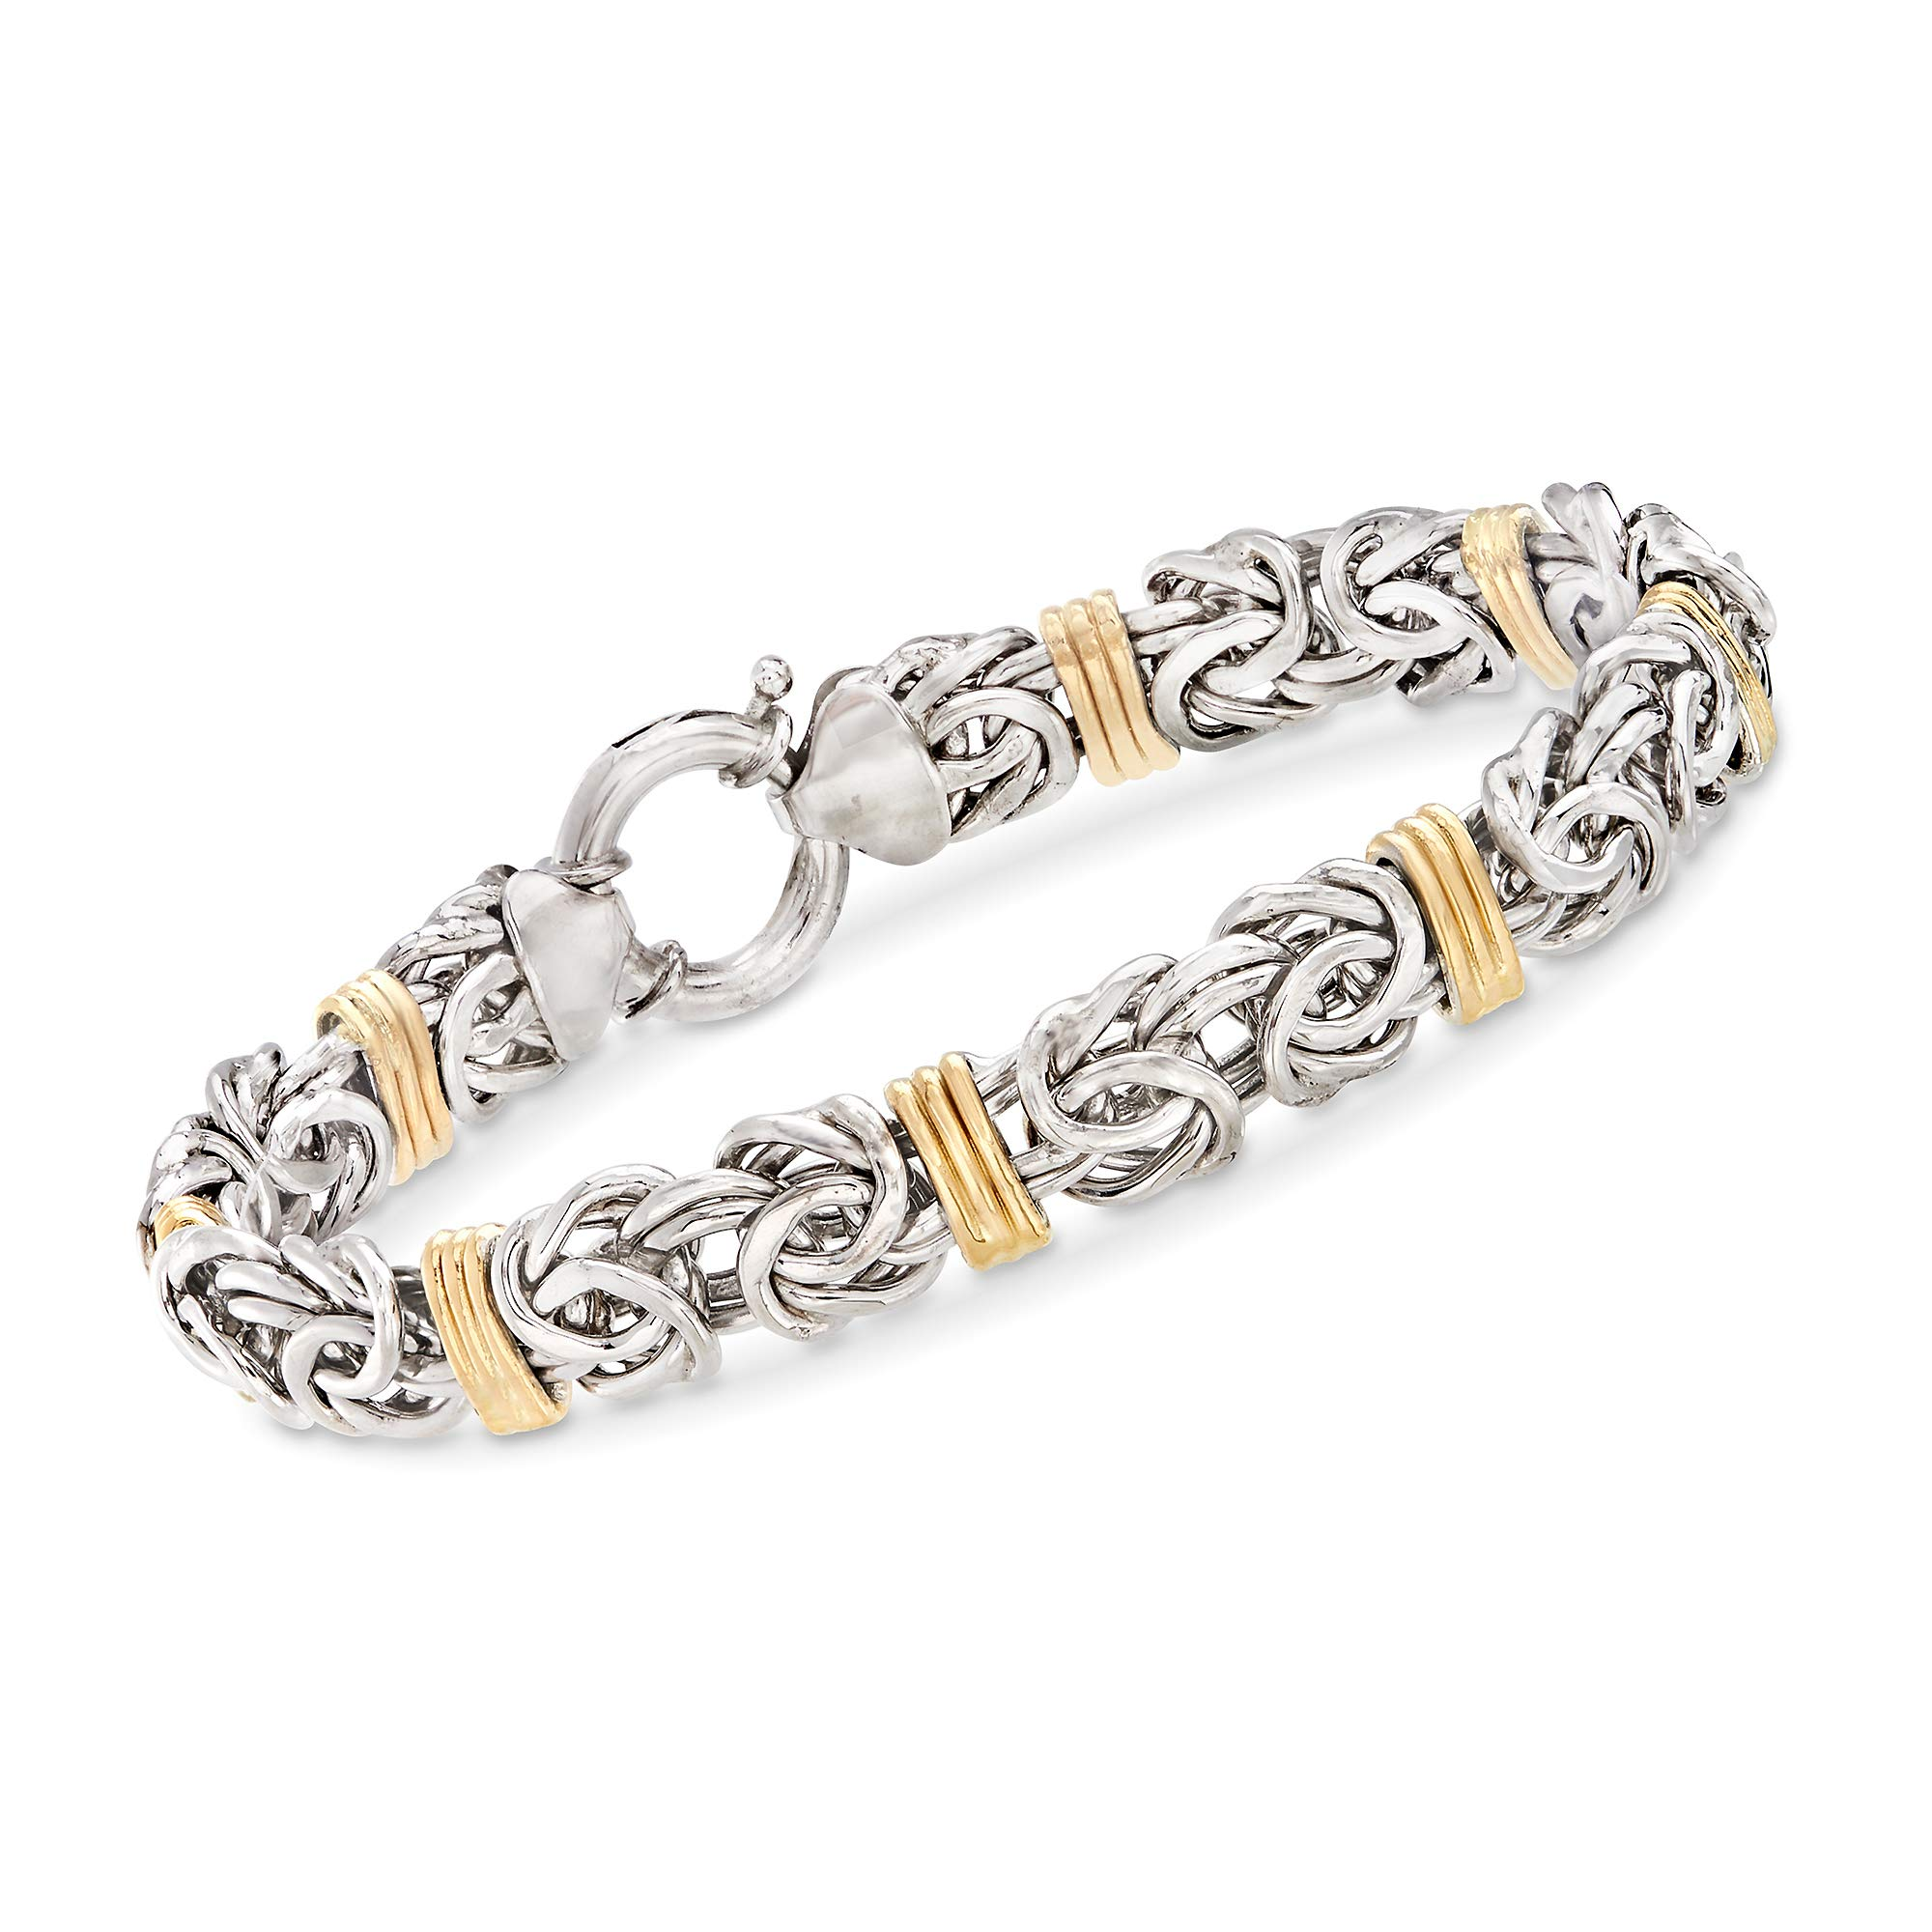 Ross-Simons Byzantine Bracelet in Sterling Silver and 14kt Yellow Gold